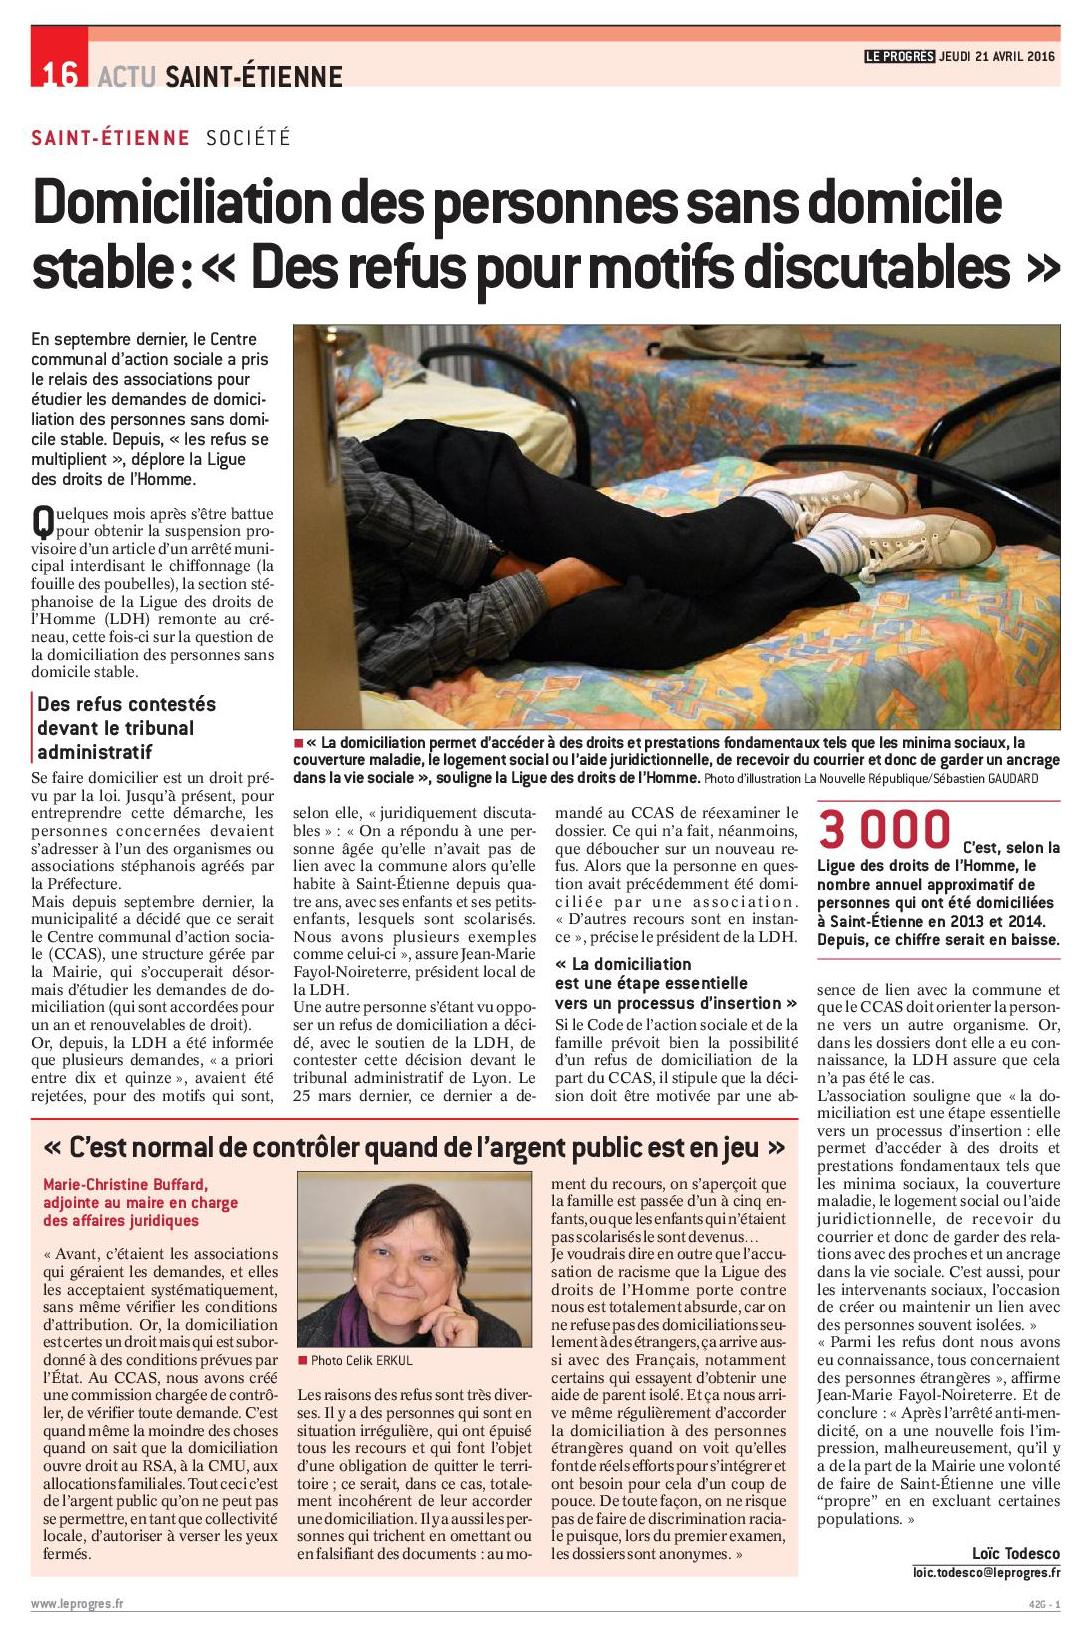 La tribune2016 04 21 la ldh de st etienen se bat pour le respect du droit a domiciliation 2